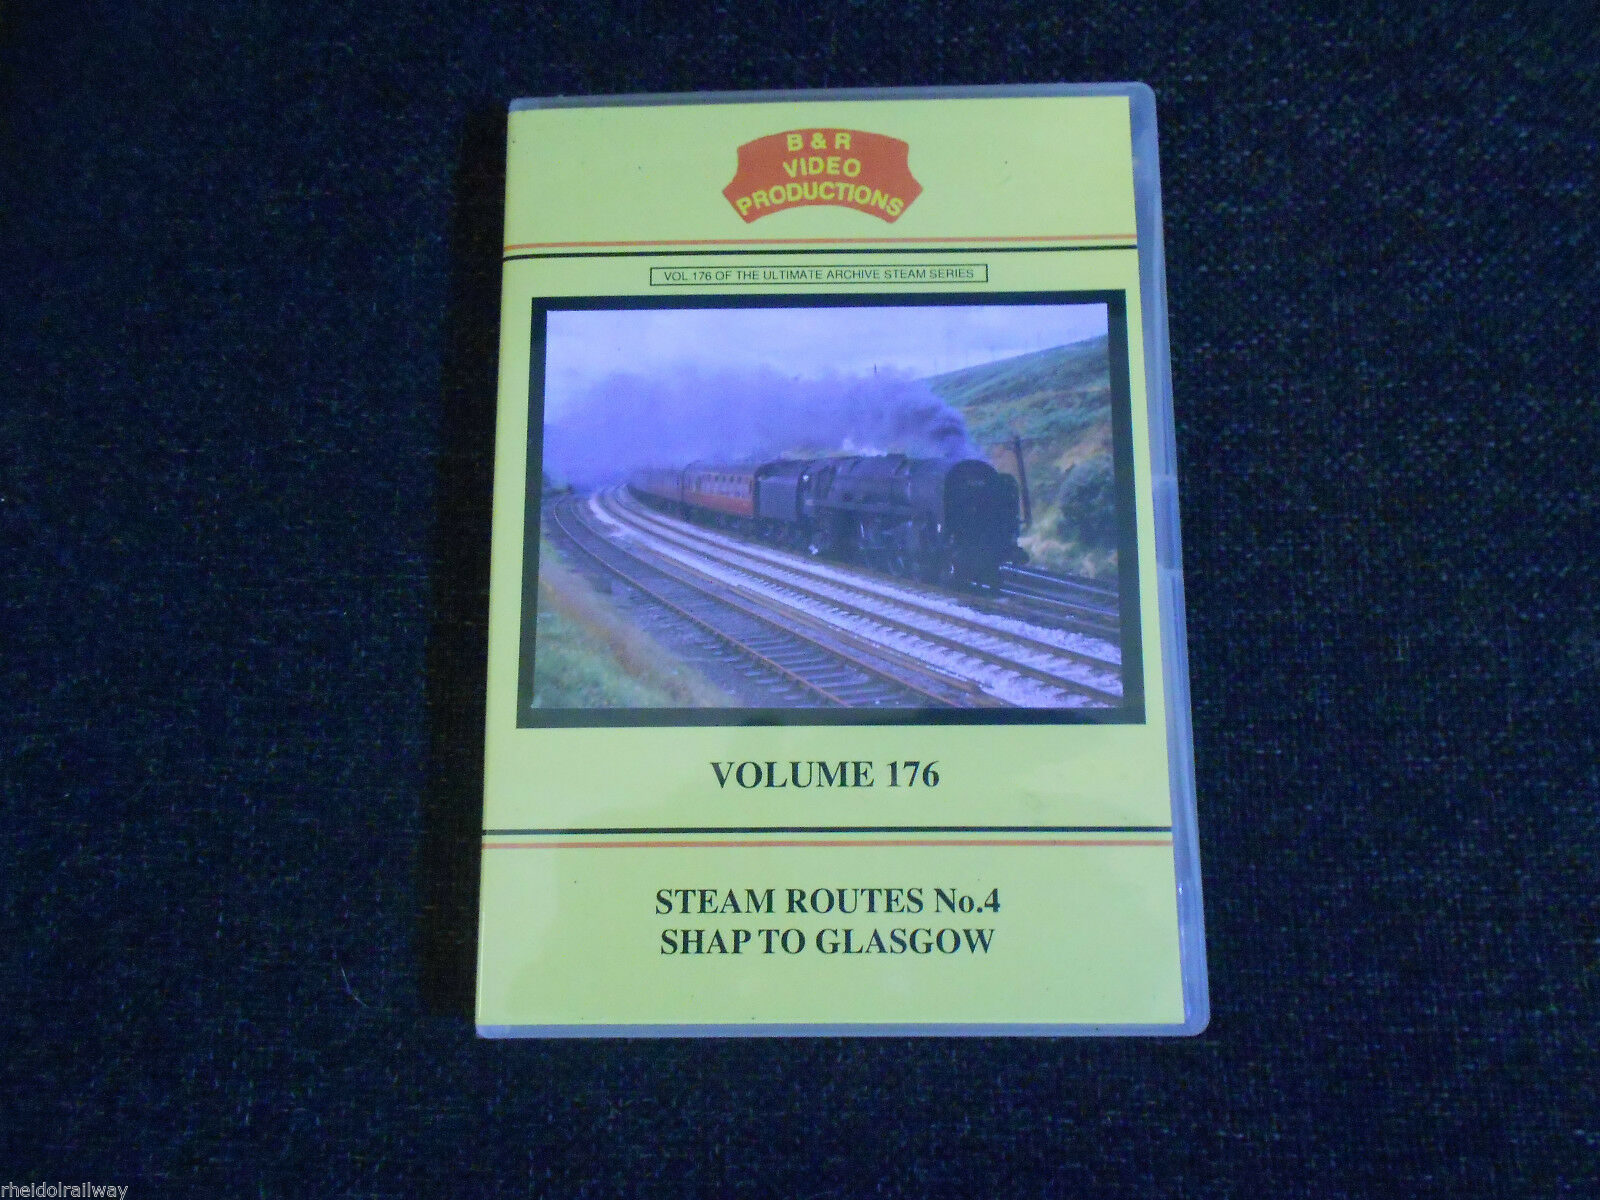 Shap, Glasgow, Steam Routes No.4 B & R Volume 176 DVD